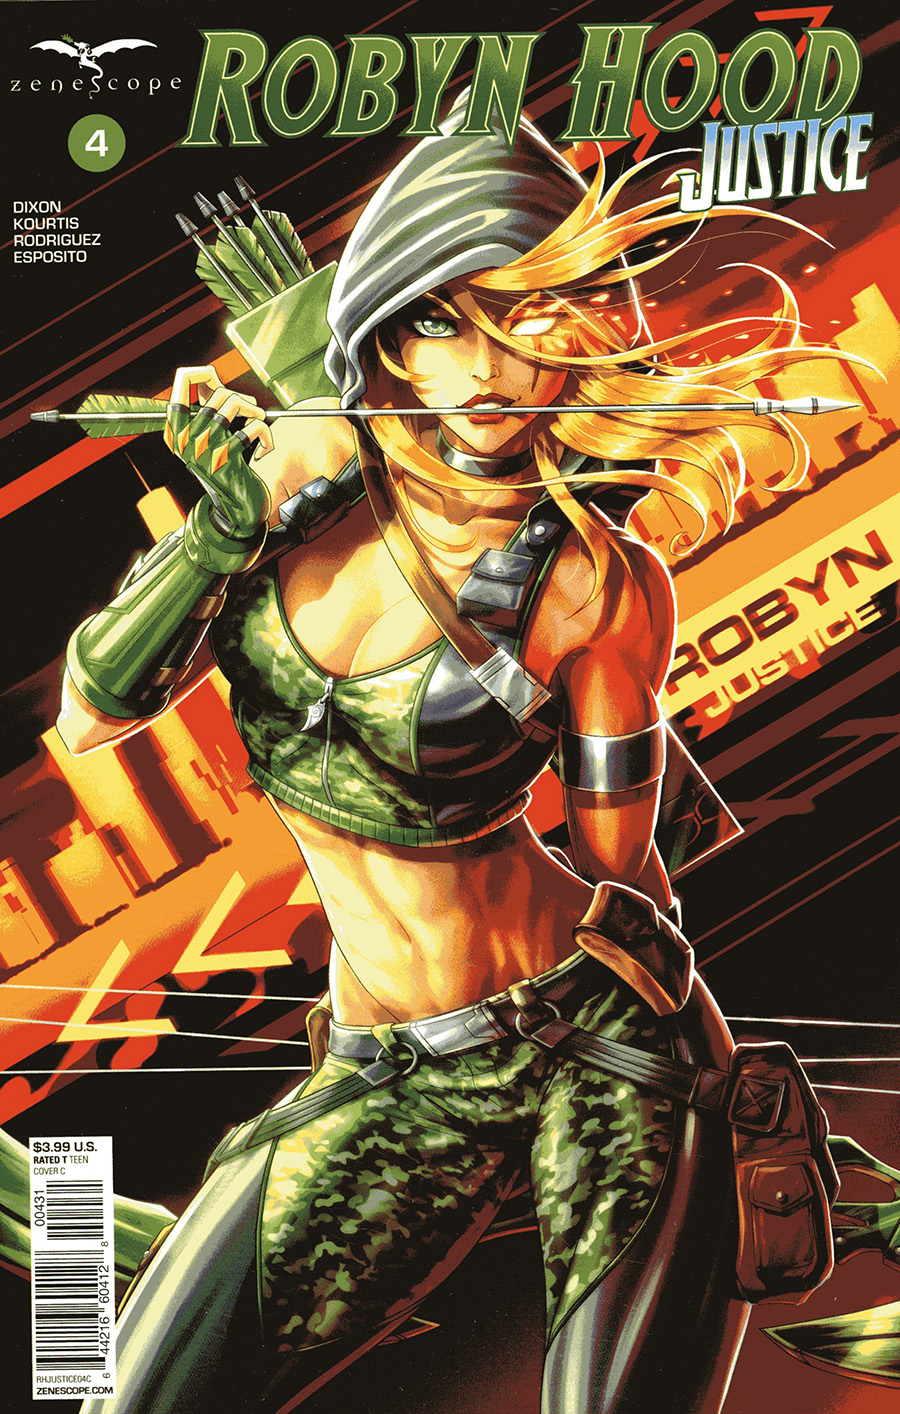 Grimm Fairy Tales Presents Robyn Hood Justice #4 Cover C Jason Cardy